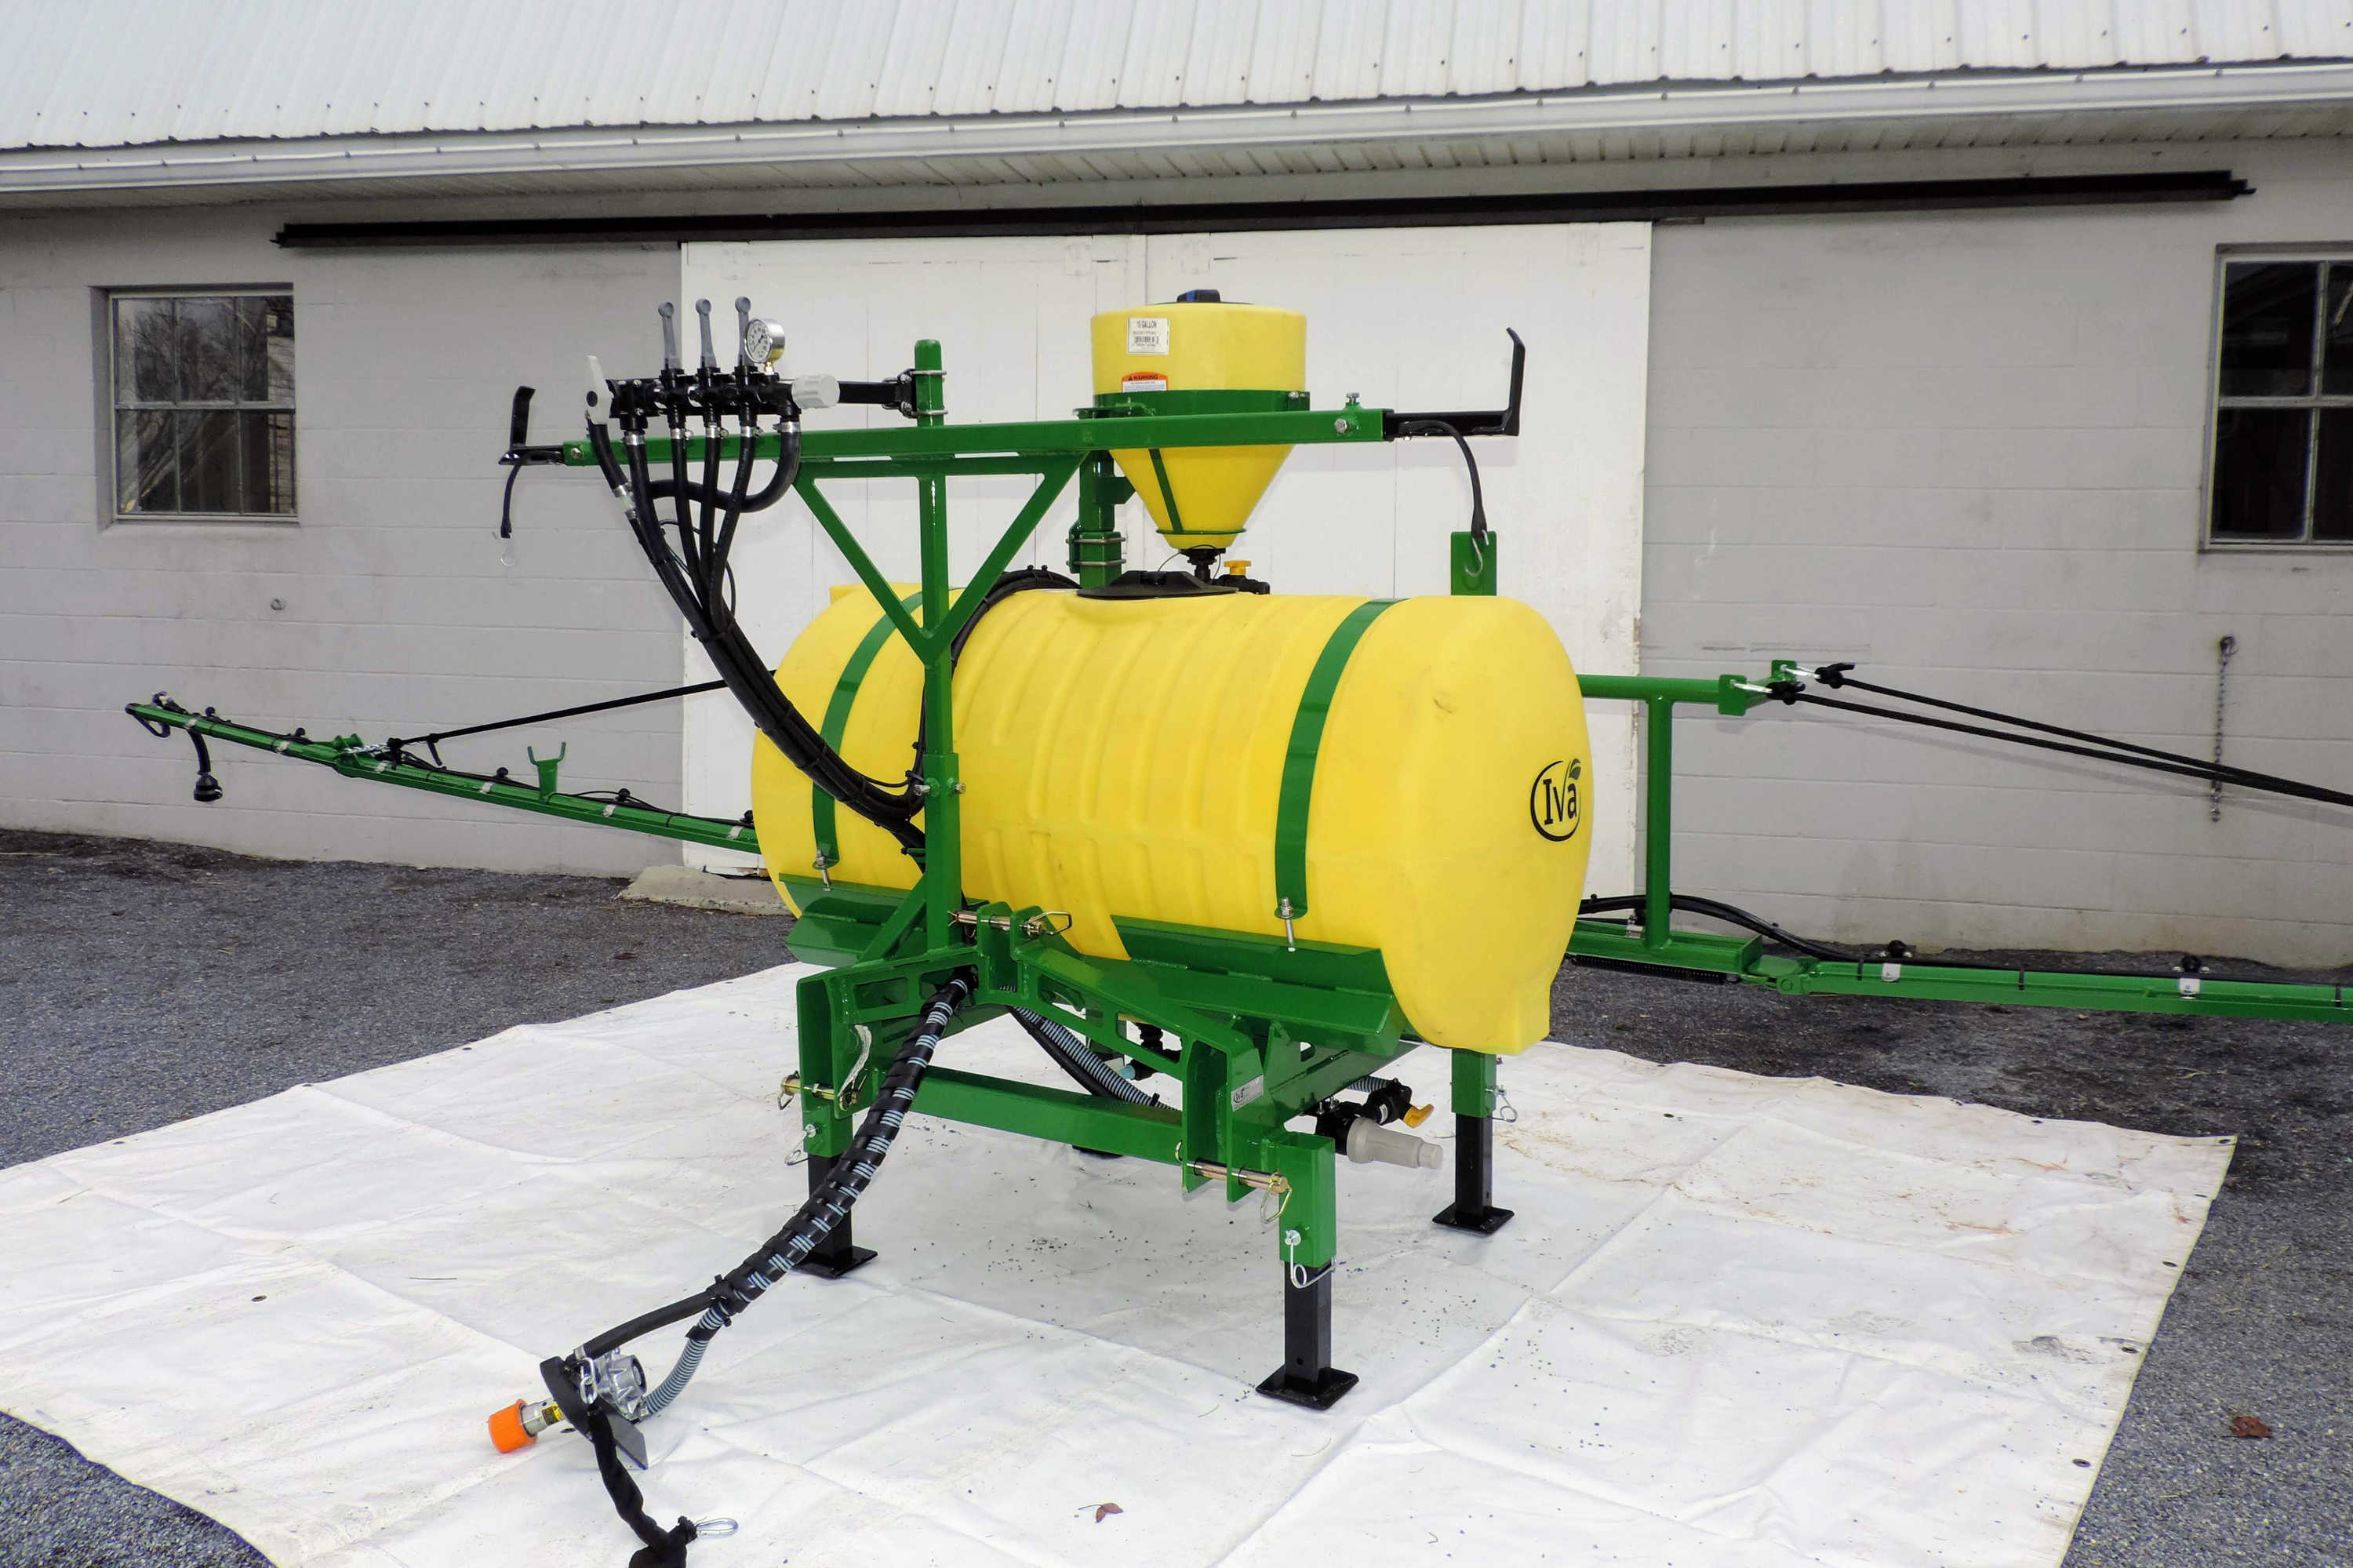 150 gallon 3-point Hitch Sprayer with PTO pump